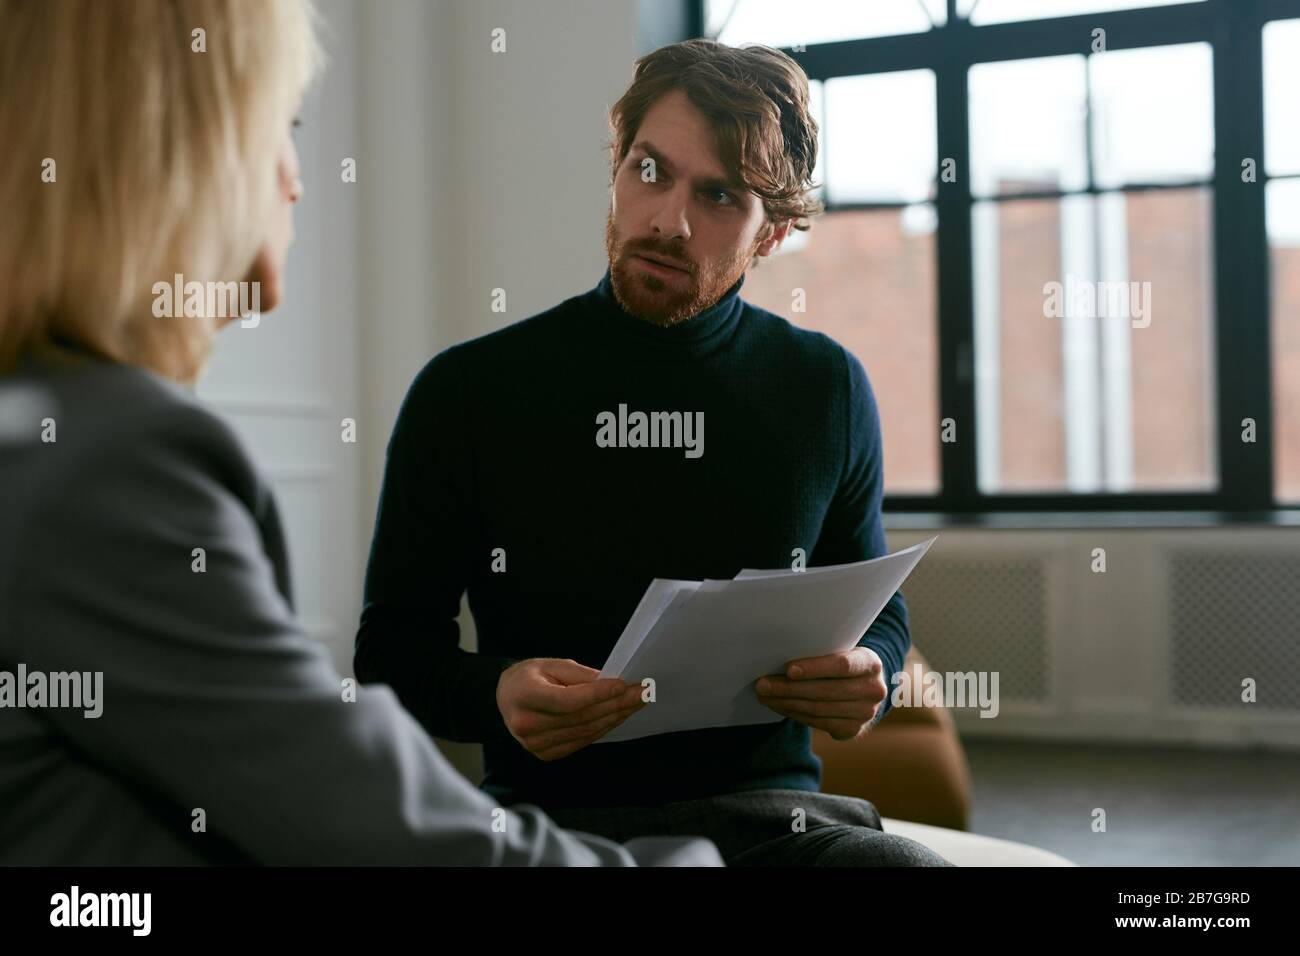 Waist up portrait of handsome bearded man talking to female partner while discussing work in office interior, copy space Stock Photo